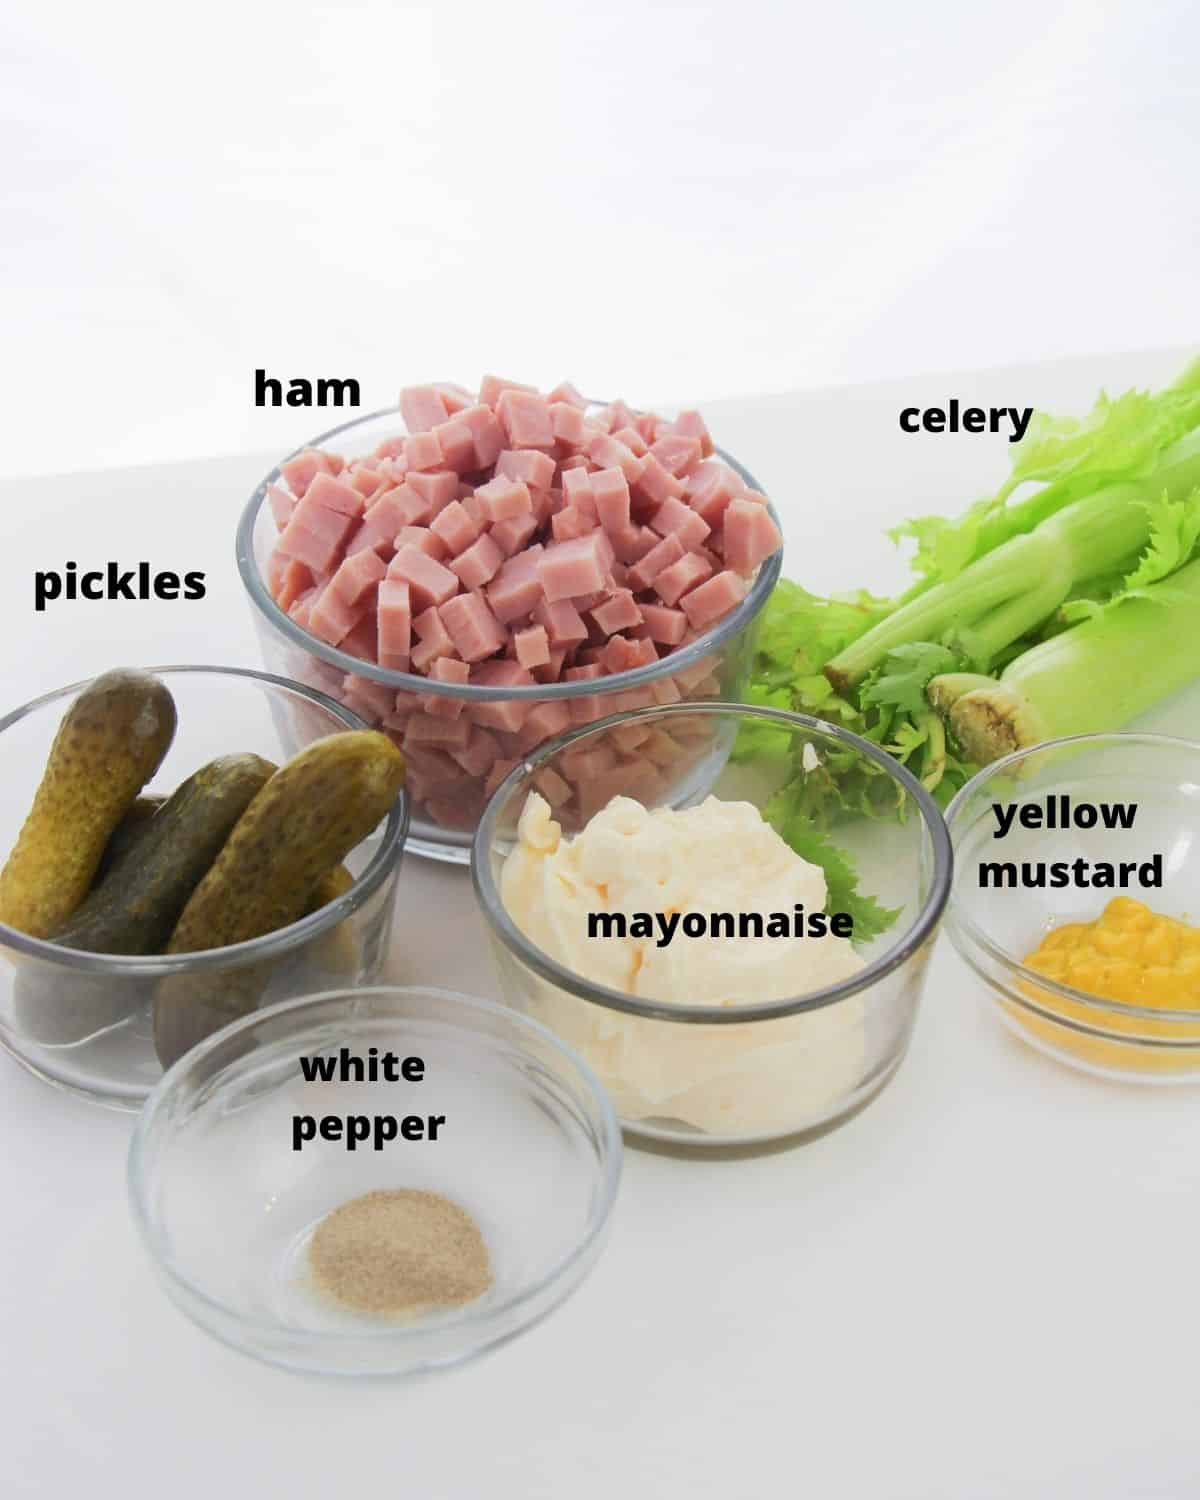 The ingredients needed to make ham salad in bowls.